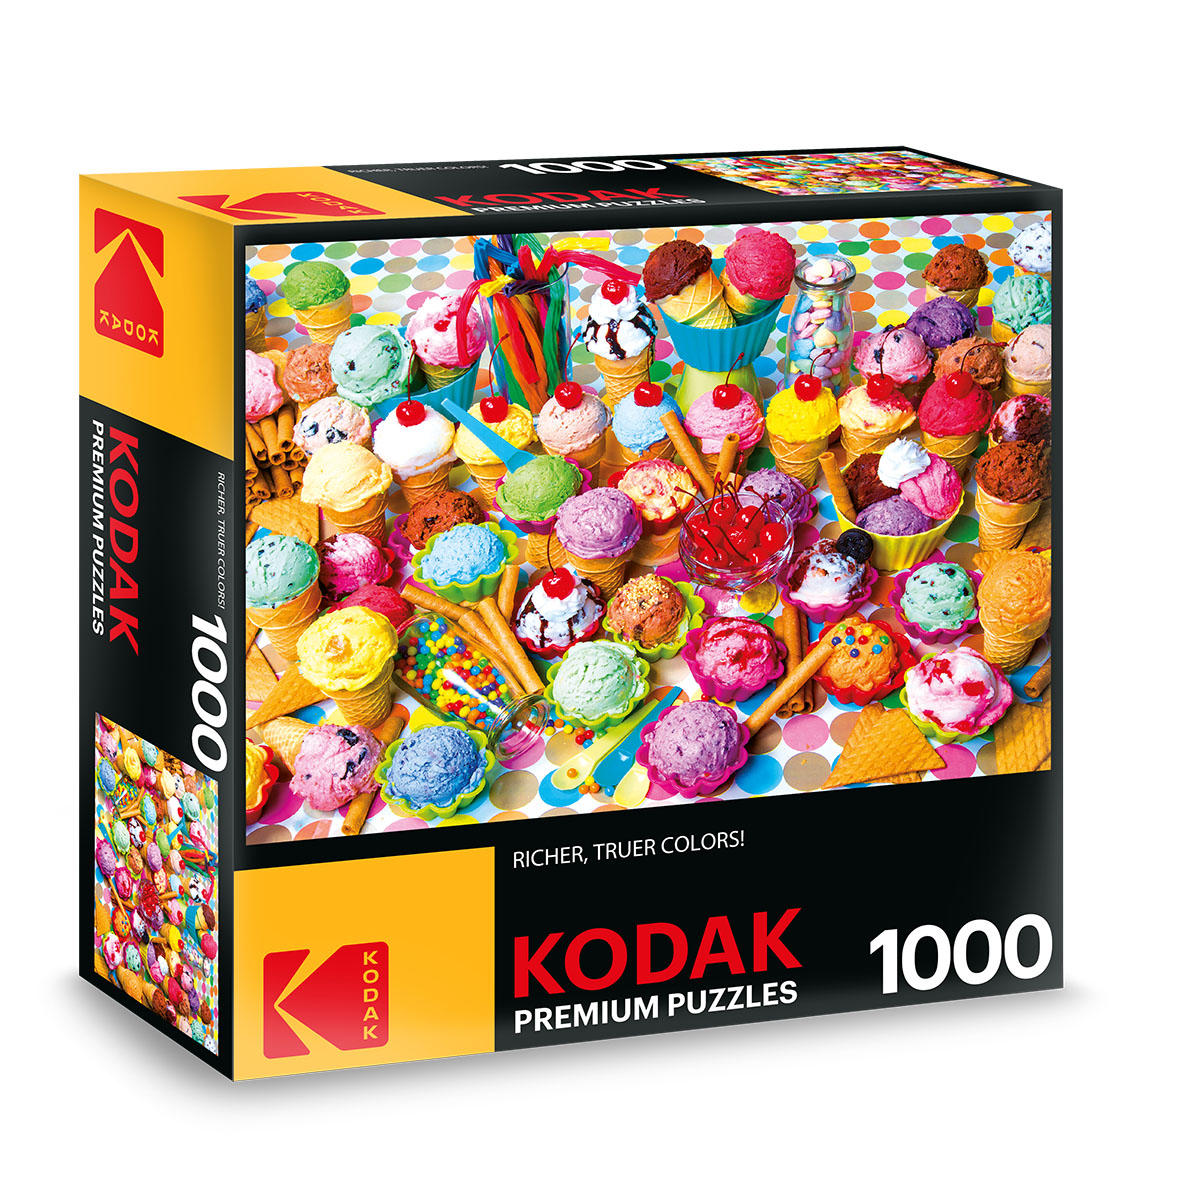 KODAK Premium Puzzles - Variety of Colorful Ice Cream Photography Jigsaw Puzzle